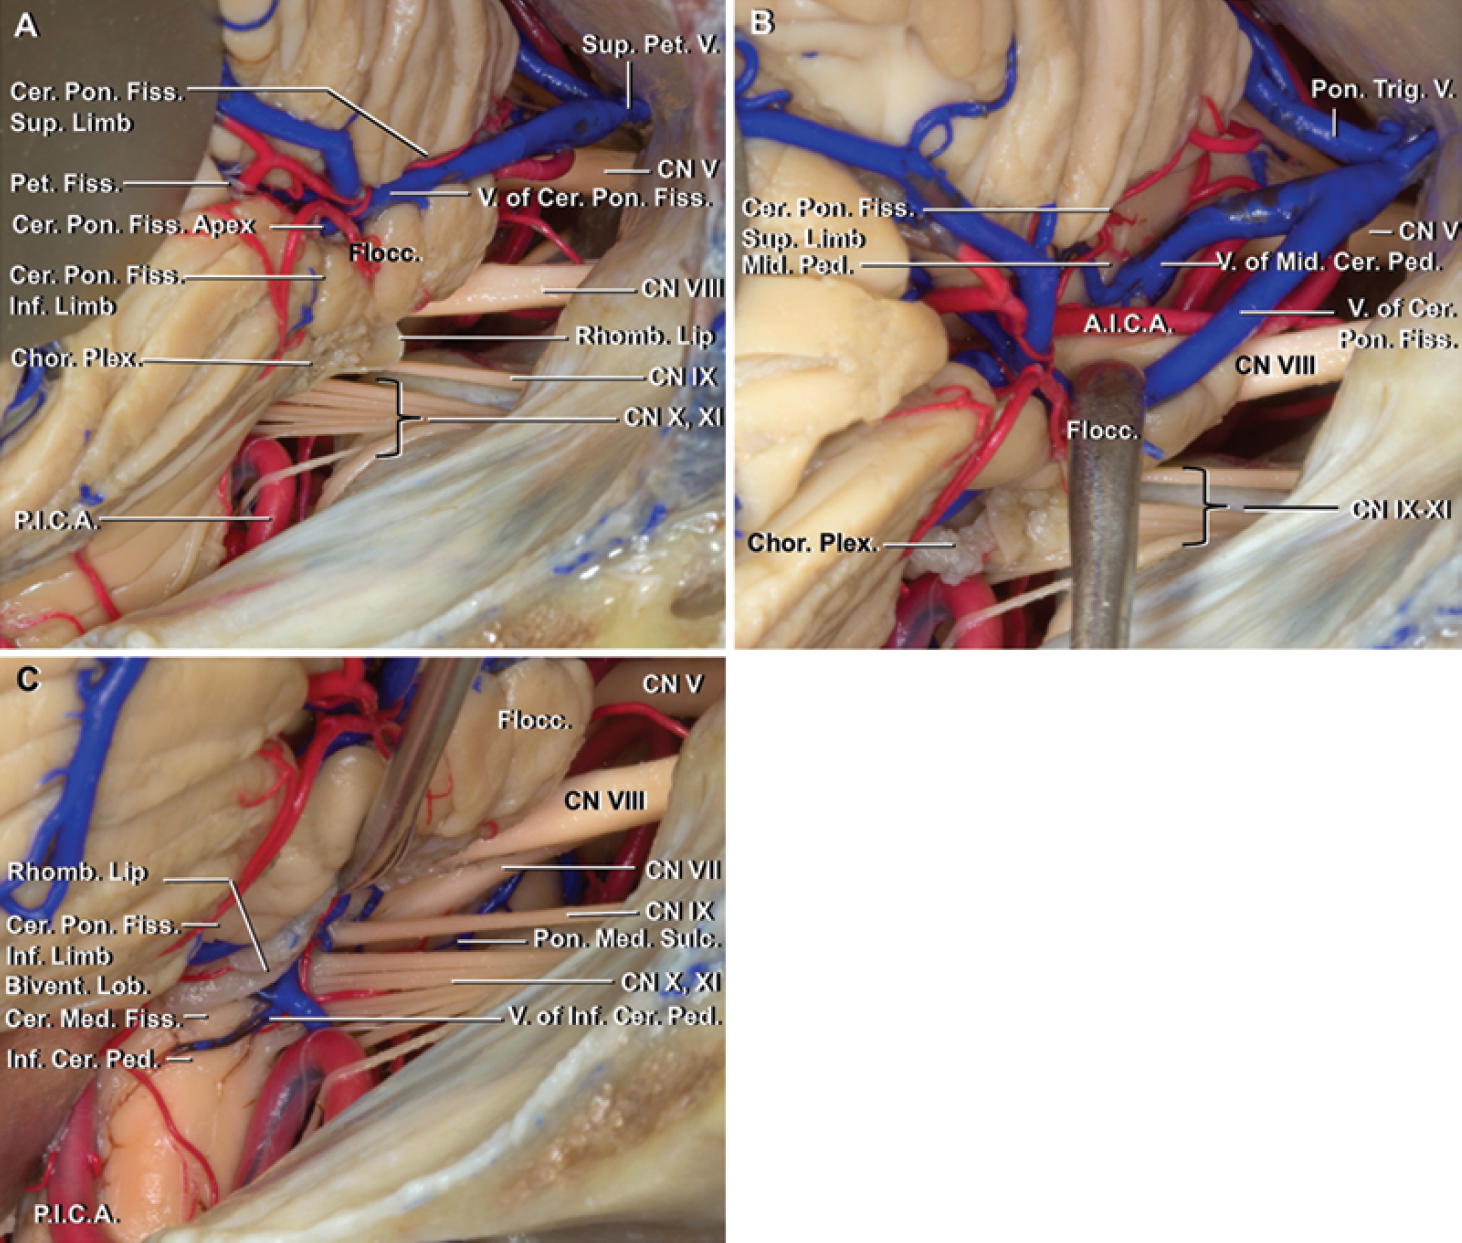 FIG. 5. Approaches to the cerebellopontine fissure. Retrosigmoid exposure of the right cerebellopontine fissure. a: View before the cerebellopontine fissure is opened. The vein of the cerebellopontine fissure runs along the superior limb of the fissure. The foramen of Luschka, rhomboid lip, and choroid plexus are located above the inferior limb. The suprafloccular cistern, located above the flocculus at the apex of the cerebellopontine fissure, is a site to open the arachnoid to drain CSF and identify the vein of the cerebellopontine fissure. b: Supraflocculuar approach. Opening the arachnoid along the superior limb of the cerebellopontine fissure in the suprafloccular approach provides access to the lateral surface of the middle cerebellar peduncle and trigeminal nerve. The vein of the cerebellopontine fissure has been gently retracted caudally. c: Infrafloccular approach. Opening the lower part of the inferior limb of the cerebellopontine fissure and superolateral edge of the cerebellomedullary fissure allows elevation of the flocculus, rhomboid lip, and choroid plexus, to expose the junction of CN VII and VIII with the brainstem, dorsolateral medulla, posterior surface of the inferior cerebellar peduncle, and the part of the pontomedullary sulcus deep to the nerves. A.I.C.A. = anterior inferior cerebellar artery; Bivent. = biventral; Cer. = cerebellar, cerebello; Chor. Plex. = choroid plexus; CN = cranial nerve; Fiss. = fissure; Flocc. = flocculus; Inf. = inferior; Lob. = lobule; Med. = medullary; Mid. = middle; P.I.C.A. = posterior inferior cerebellar artery; Ped. = peduncle; Pet. = petrosal; Pon. = pontine, ponto; Rhomb. = rhomboid; Sulc. = sulcus; Sup. = superior; Trig. = trigeminal; V. = vein.